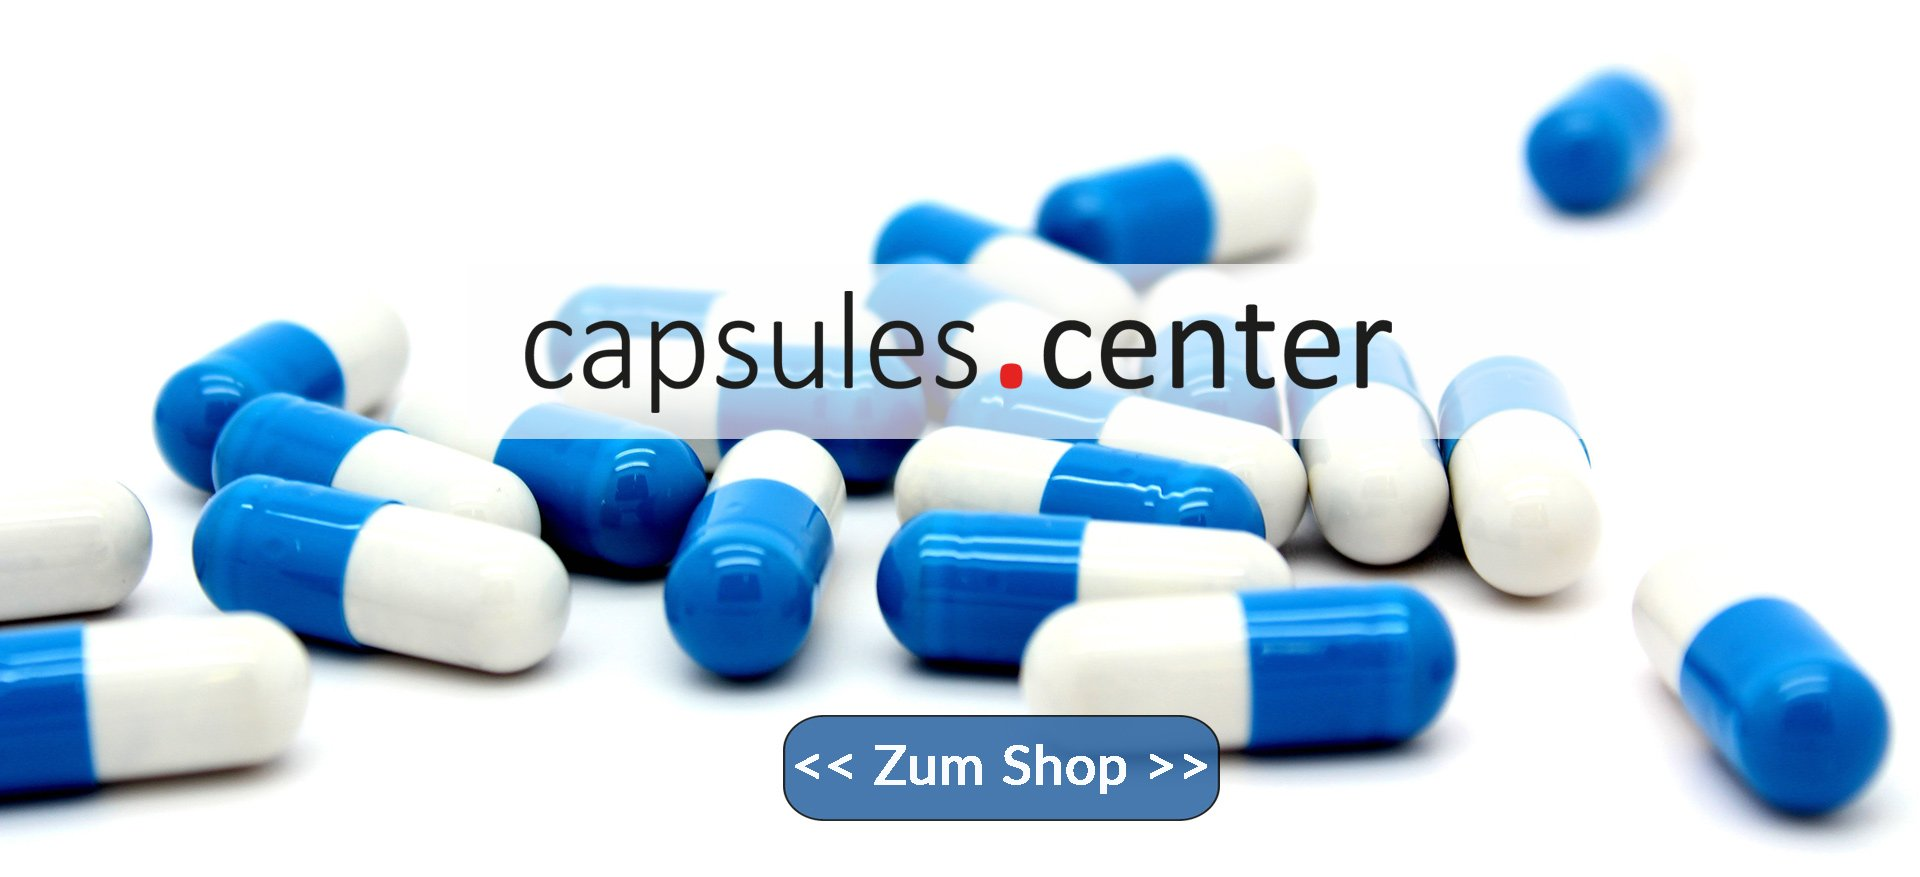 capsules.center - der Leerkapsel Shop